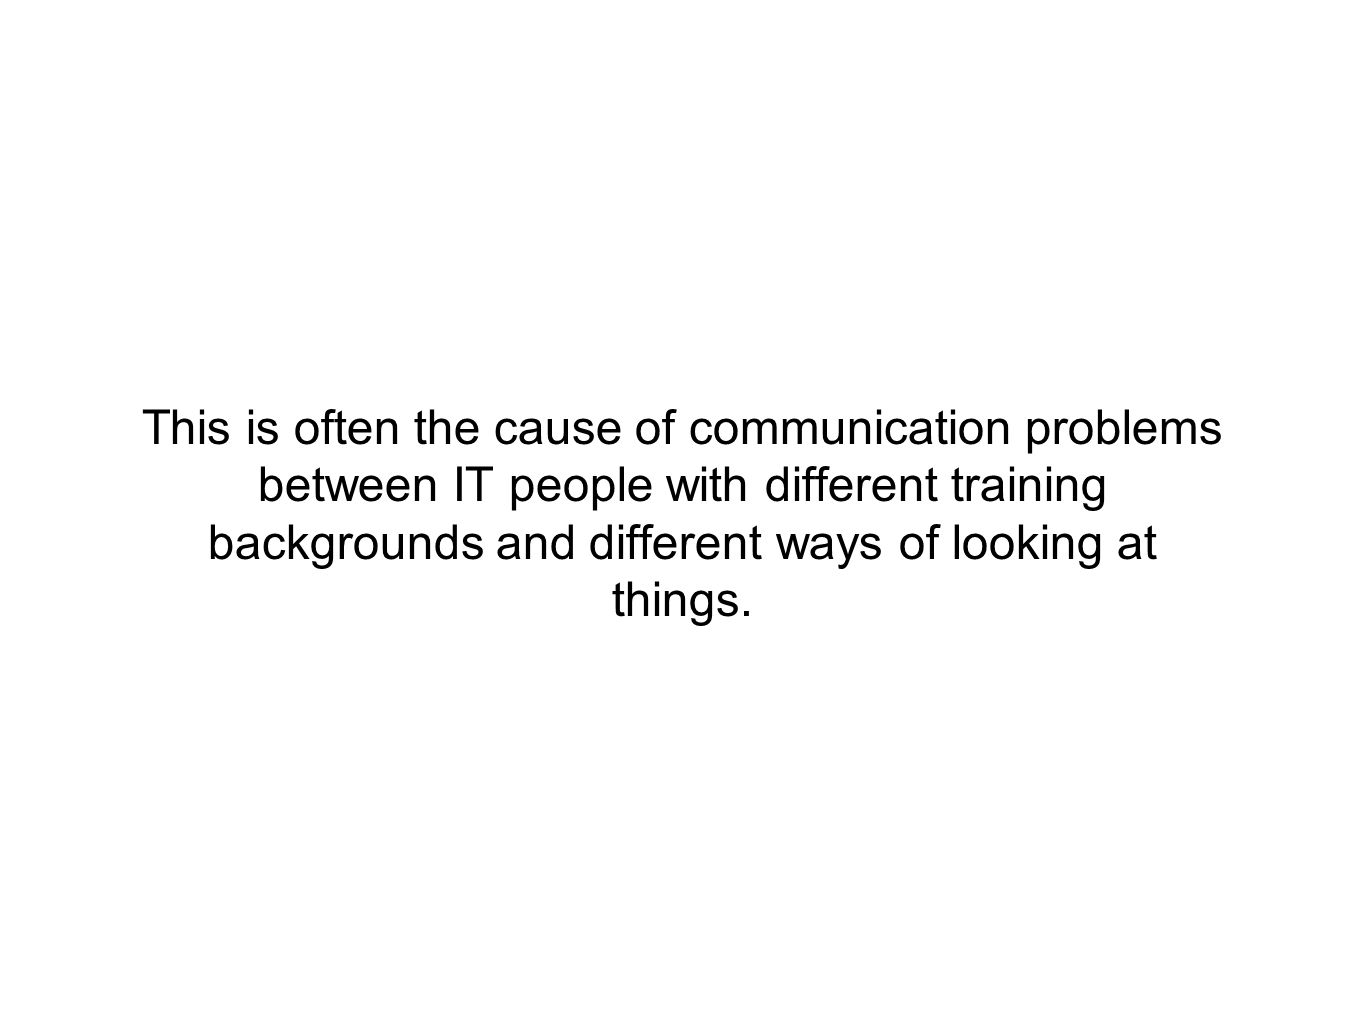 This is often the cause of communication problems between IT people with different training backgrounds and different ways of looking at things.